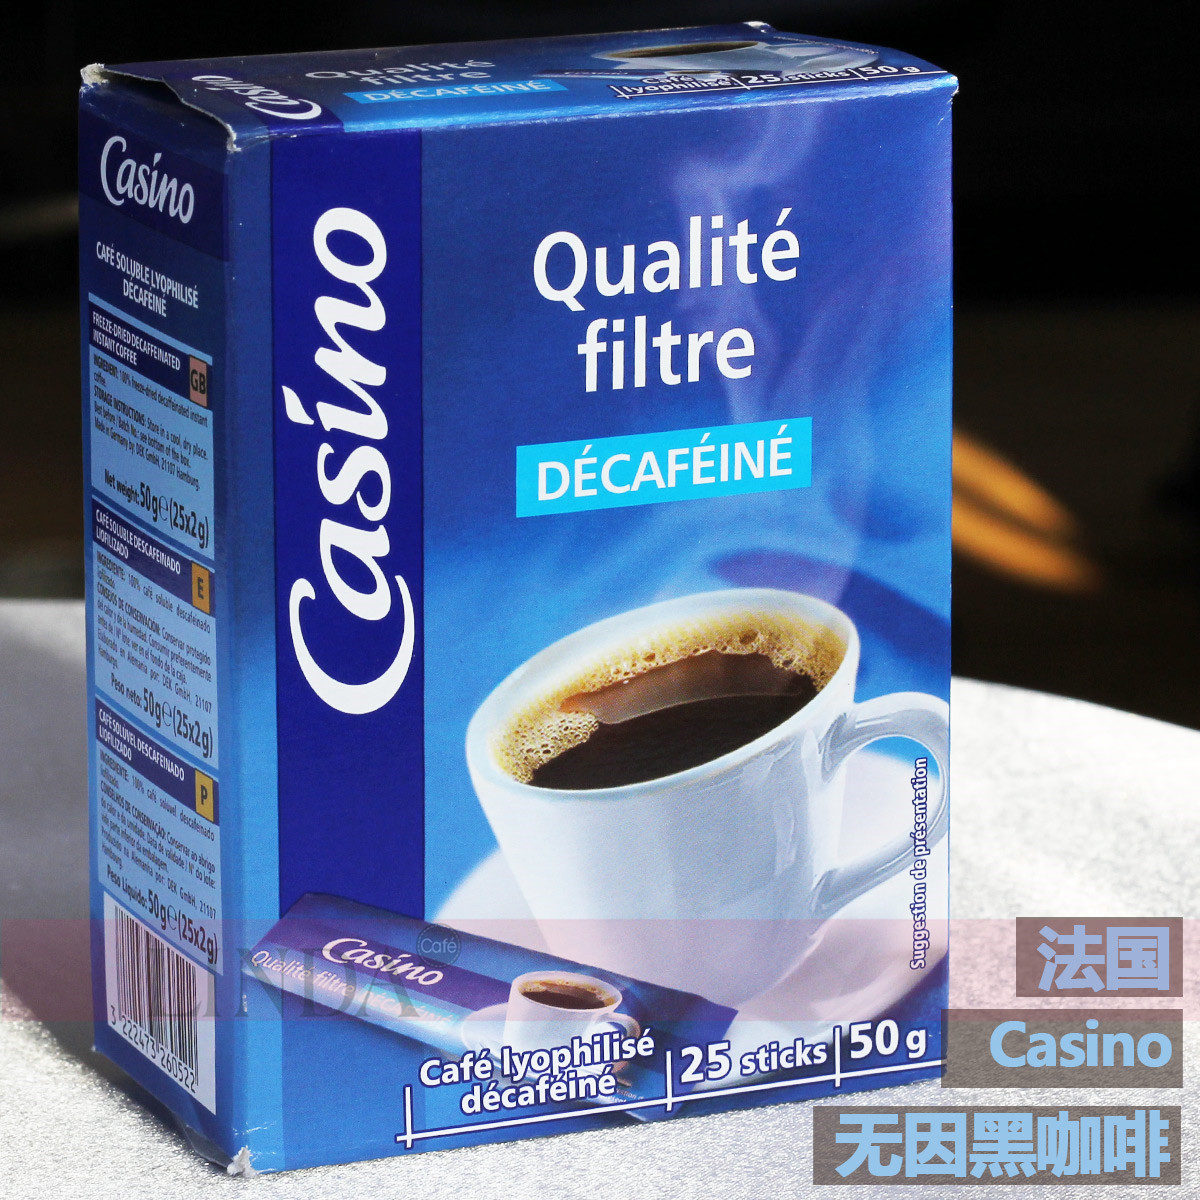 Decaffeinated Instant Coffee French Import Casino Black coffee 25 2g Box No Caffeine and Sugar free